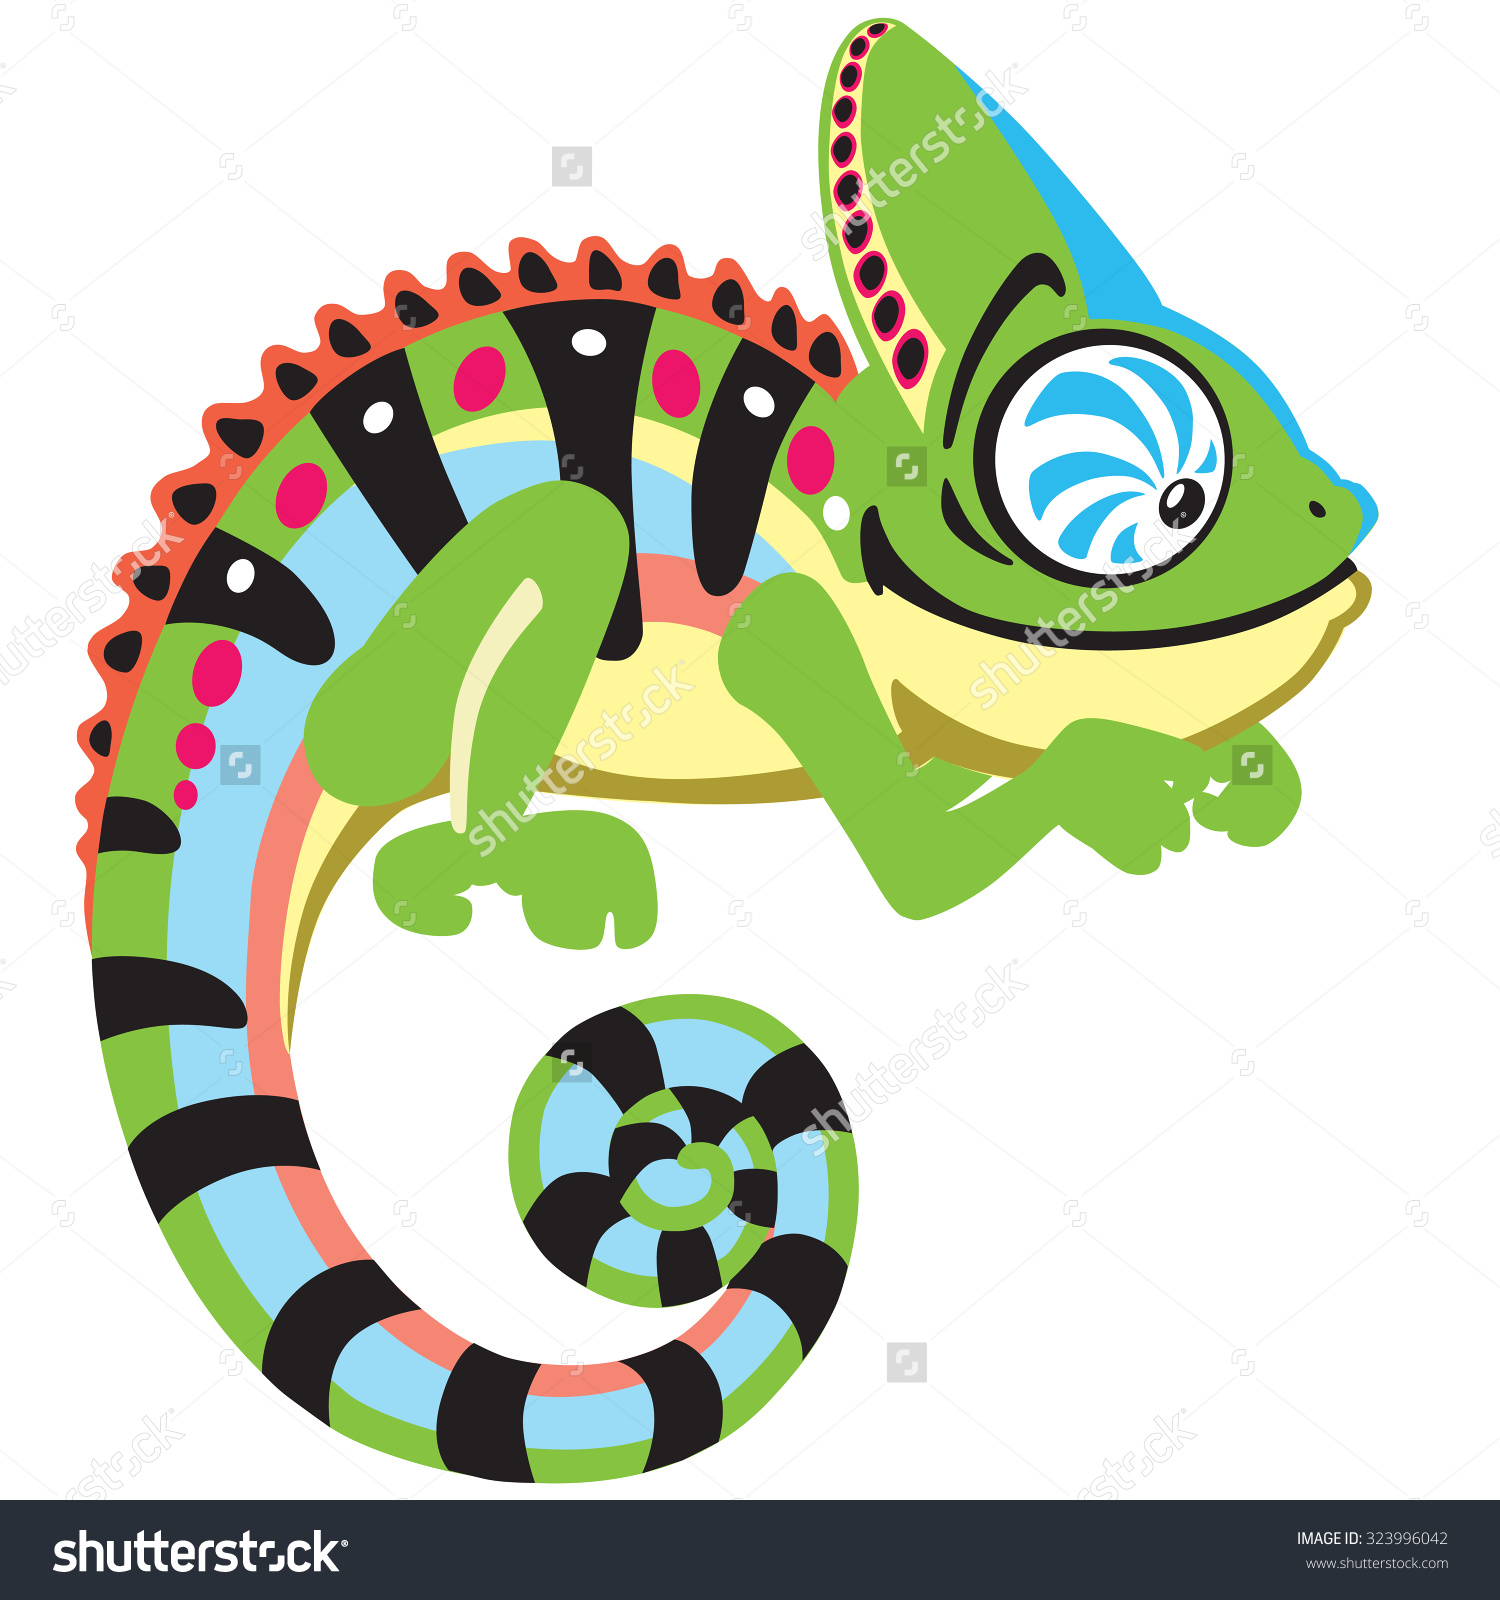 Chameleon clipart illustration. Cameleon reptile free collection